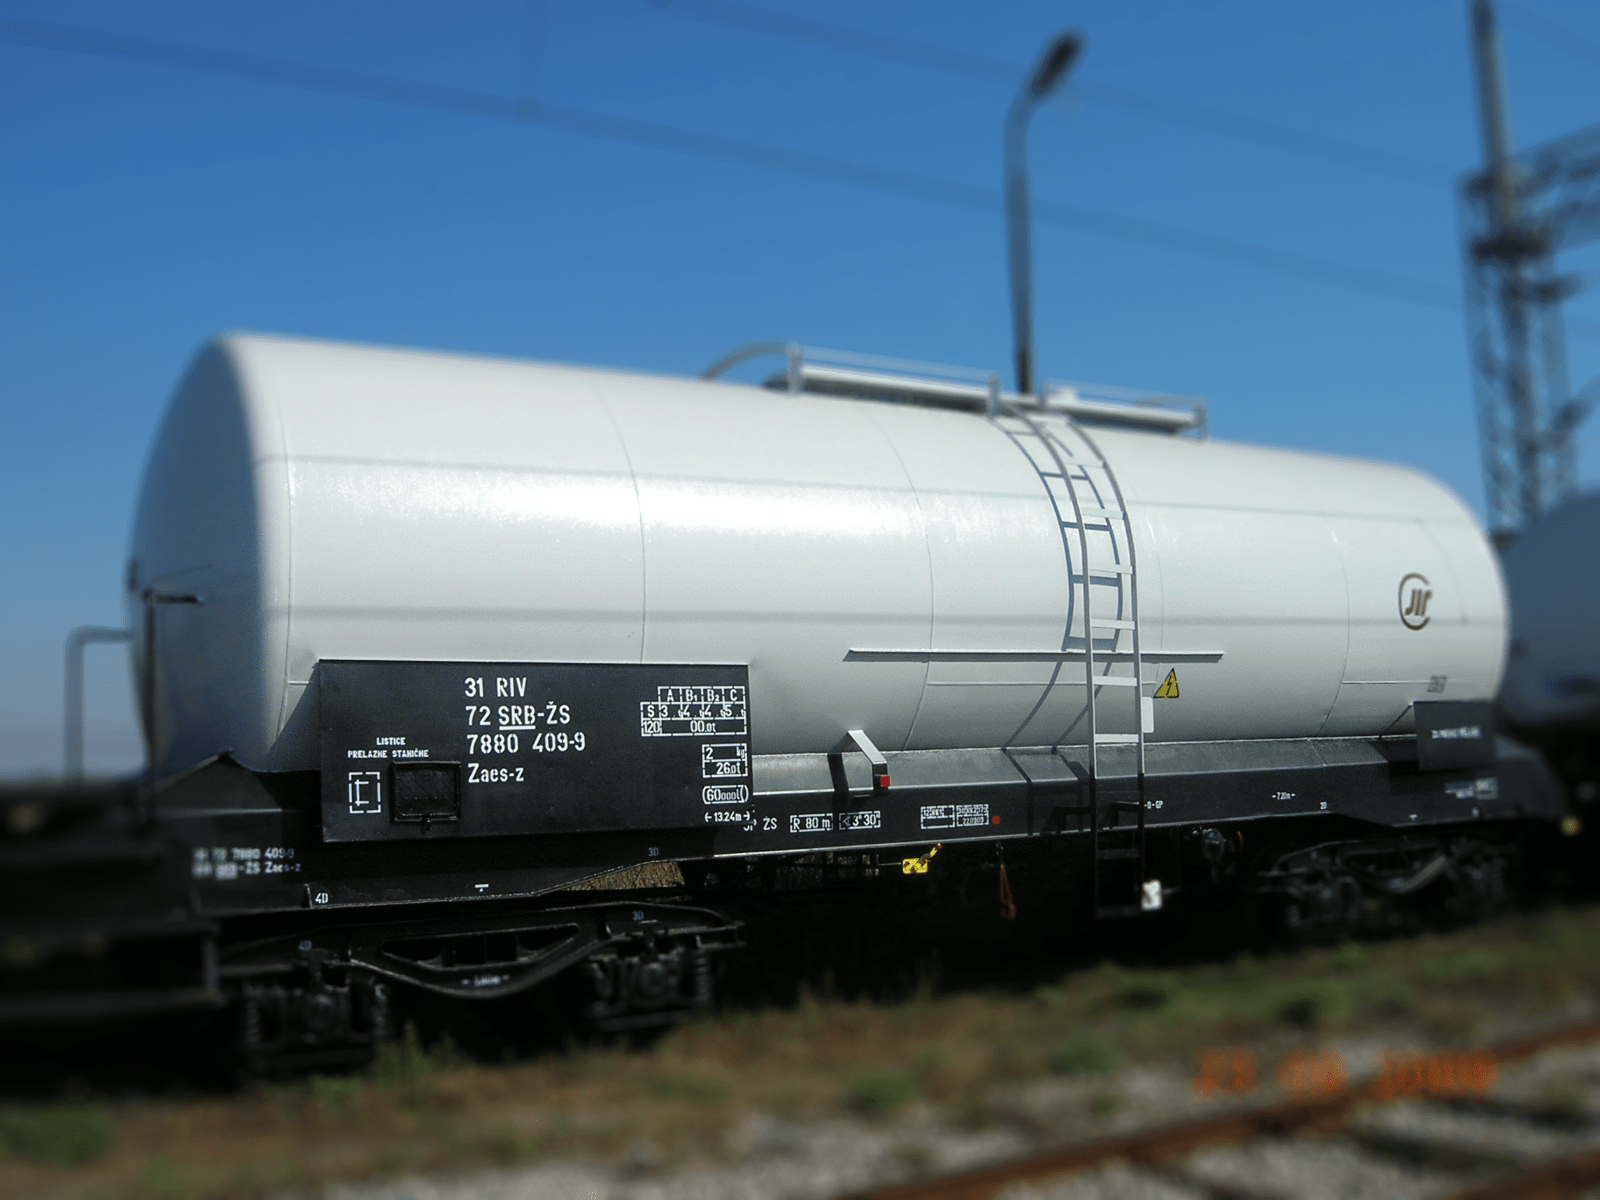 Tank wagon with steel vessels for holding liquids or gases